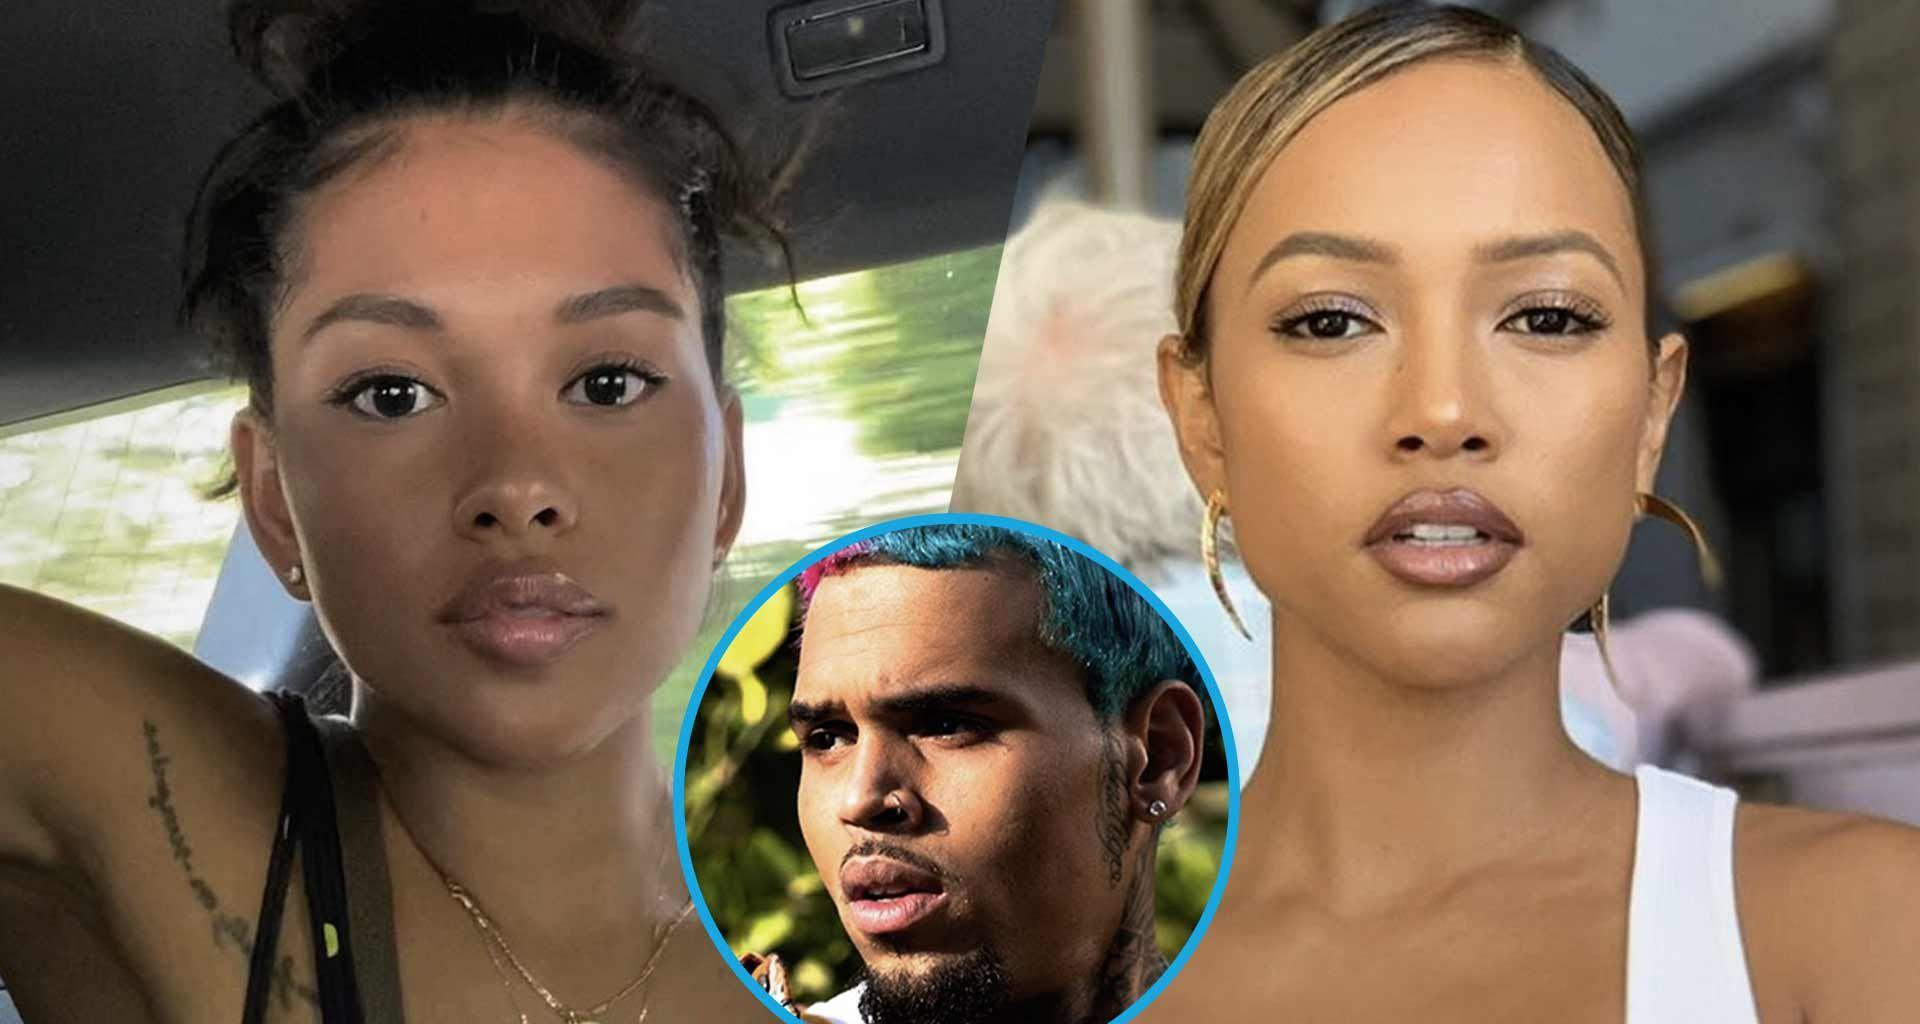 Chris Brown's Baby Mama, Ammika Harris Is Effortlessly Stunning In These Photos - Some Haters Accuse Her Of Copying Karrueche